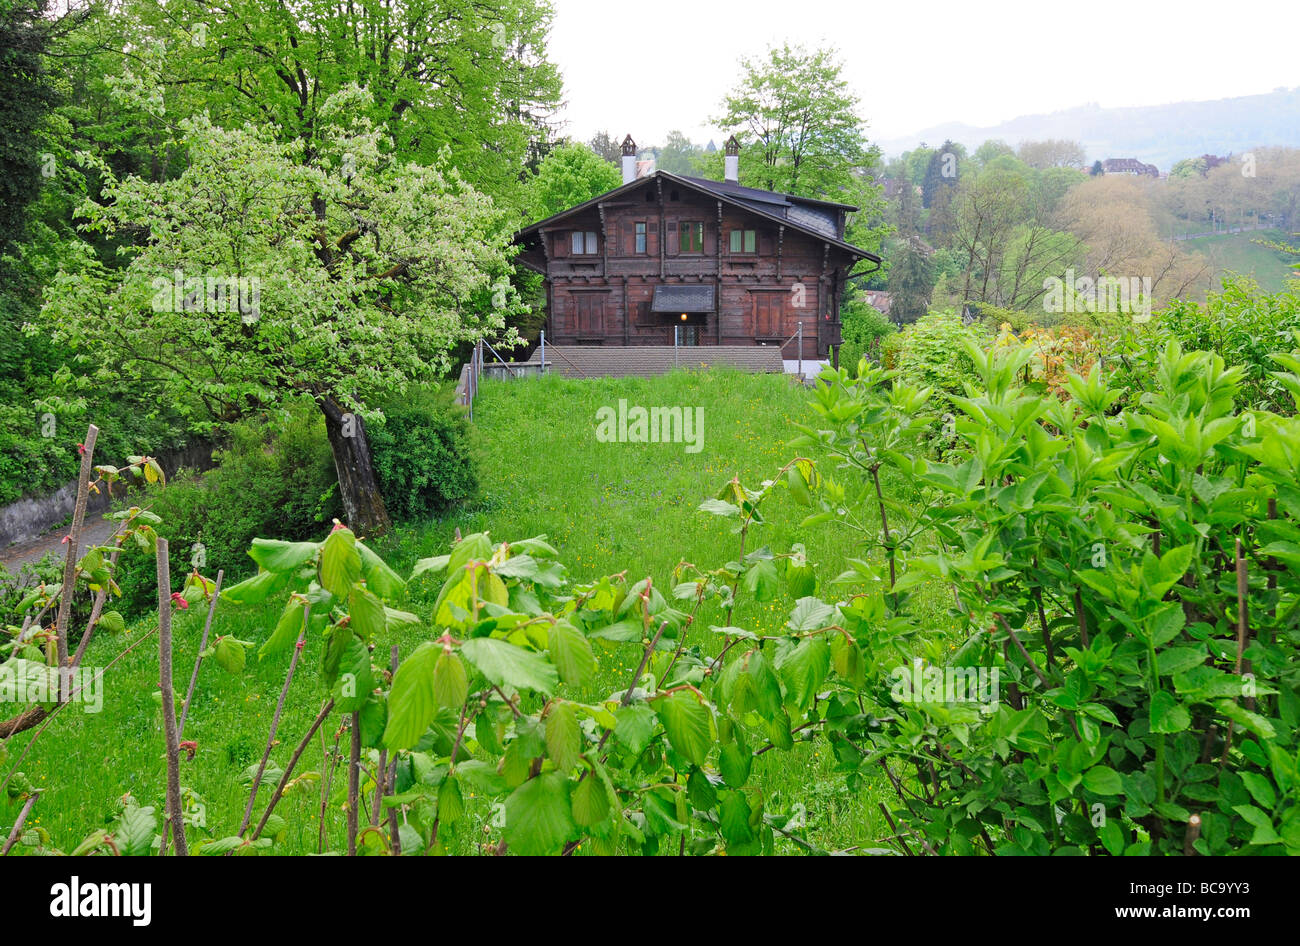 Natural landscape on the shore of the Aare river in Bern, Switzerland - Stock Image